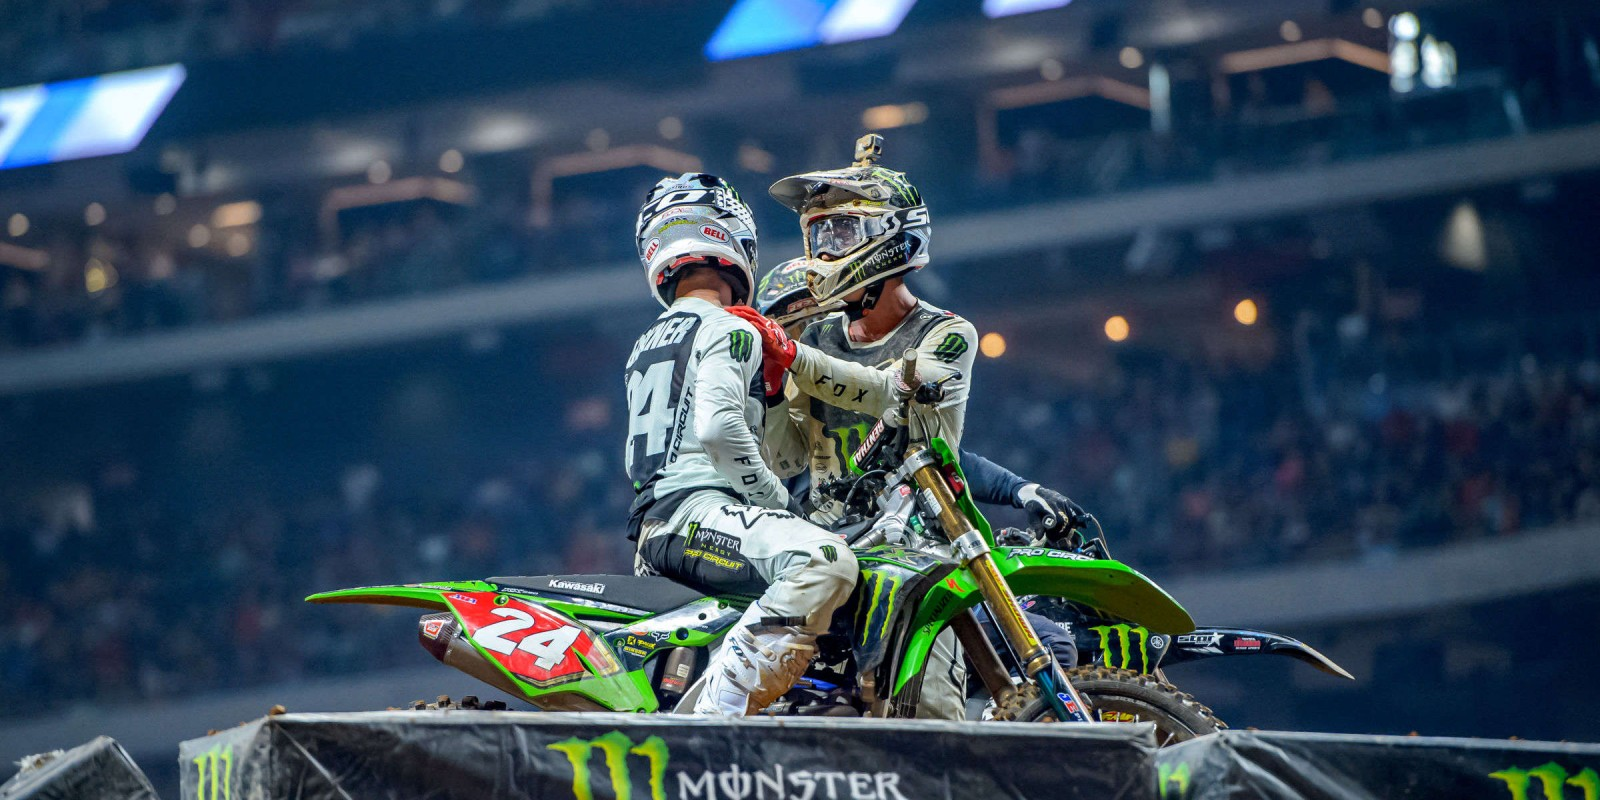 Monster athletes compete in Round 8 of the 2019 Supercross season in Atlanta